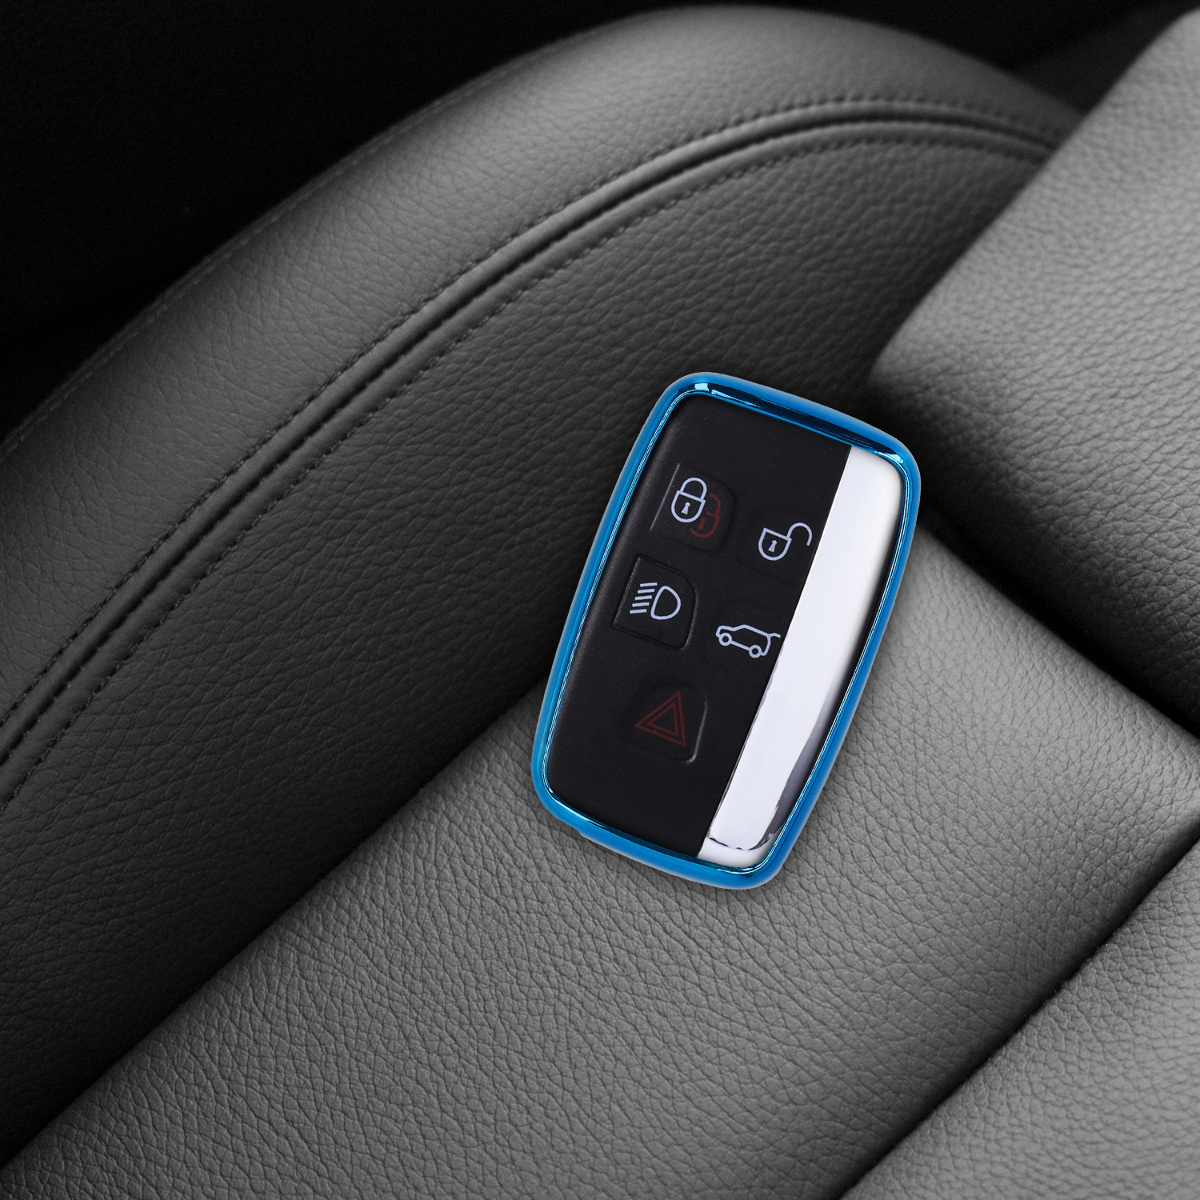 Silver//Metallic Silver Soft TPU Silicone Protective Key Fob Cover for Land Rover Jaguar 5-Button Remote Car Key kwmobile Car Key Cover for Land Rover Jaguar